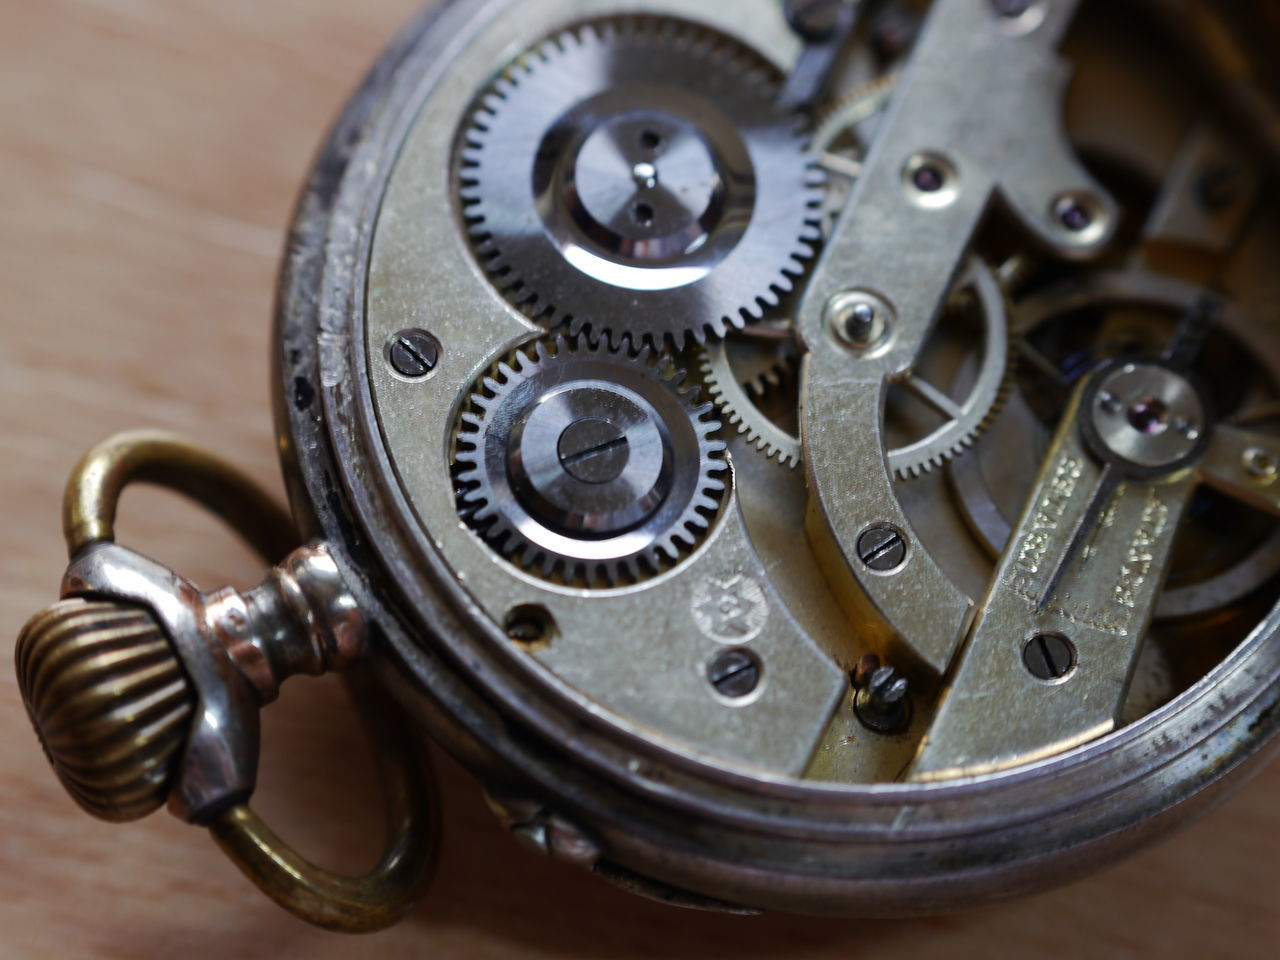 Antique Clock Clockworks Close-up Day Gear Industry Machine Part Machinery Metal No People Technology Time